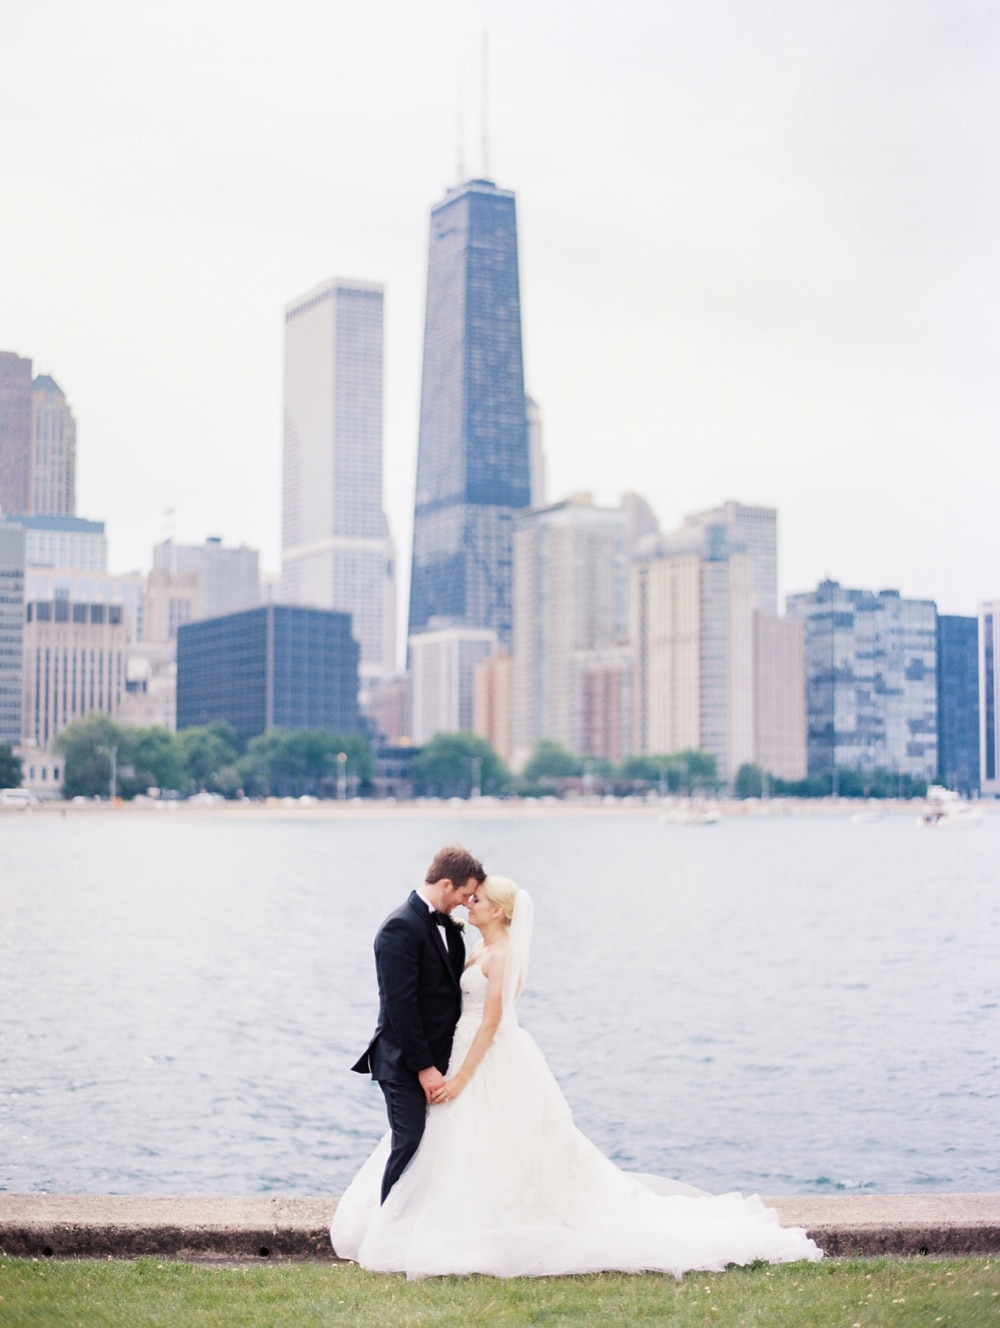 Kristin-La-Voie-Photography-salvatore's-chicago-wedding-photographer-79